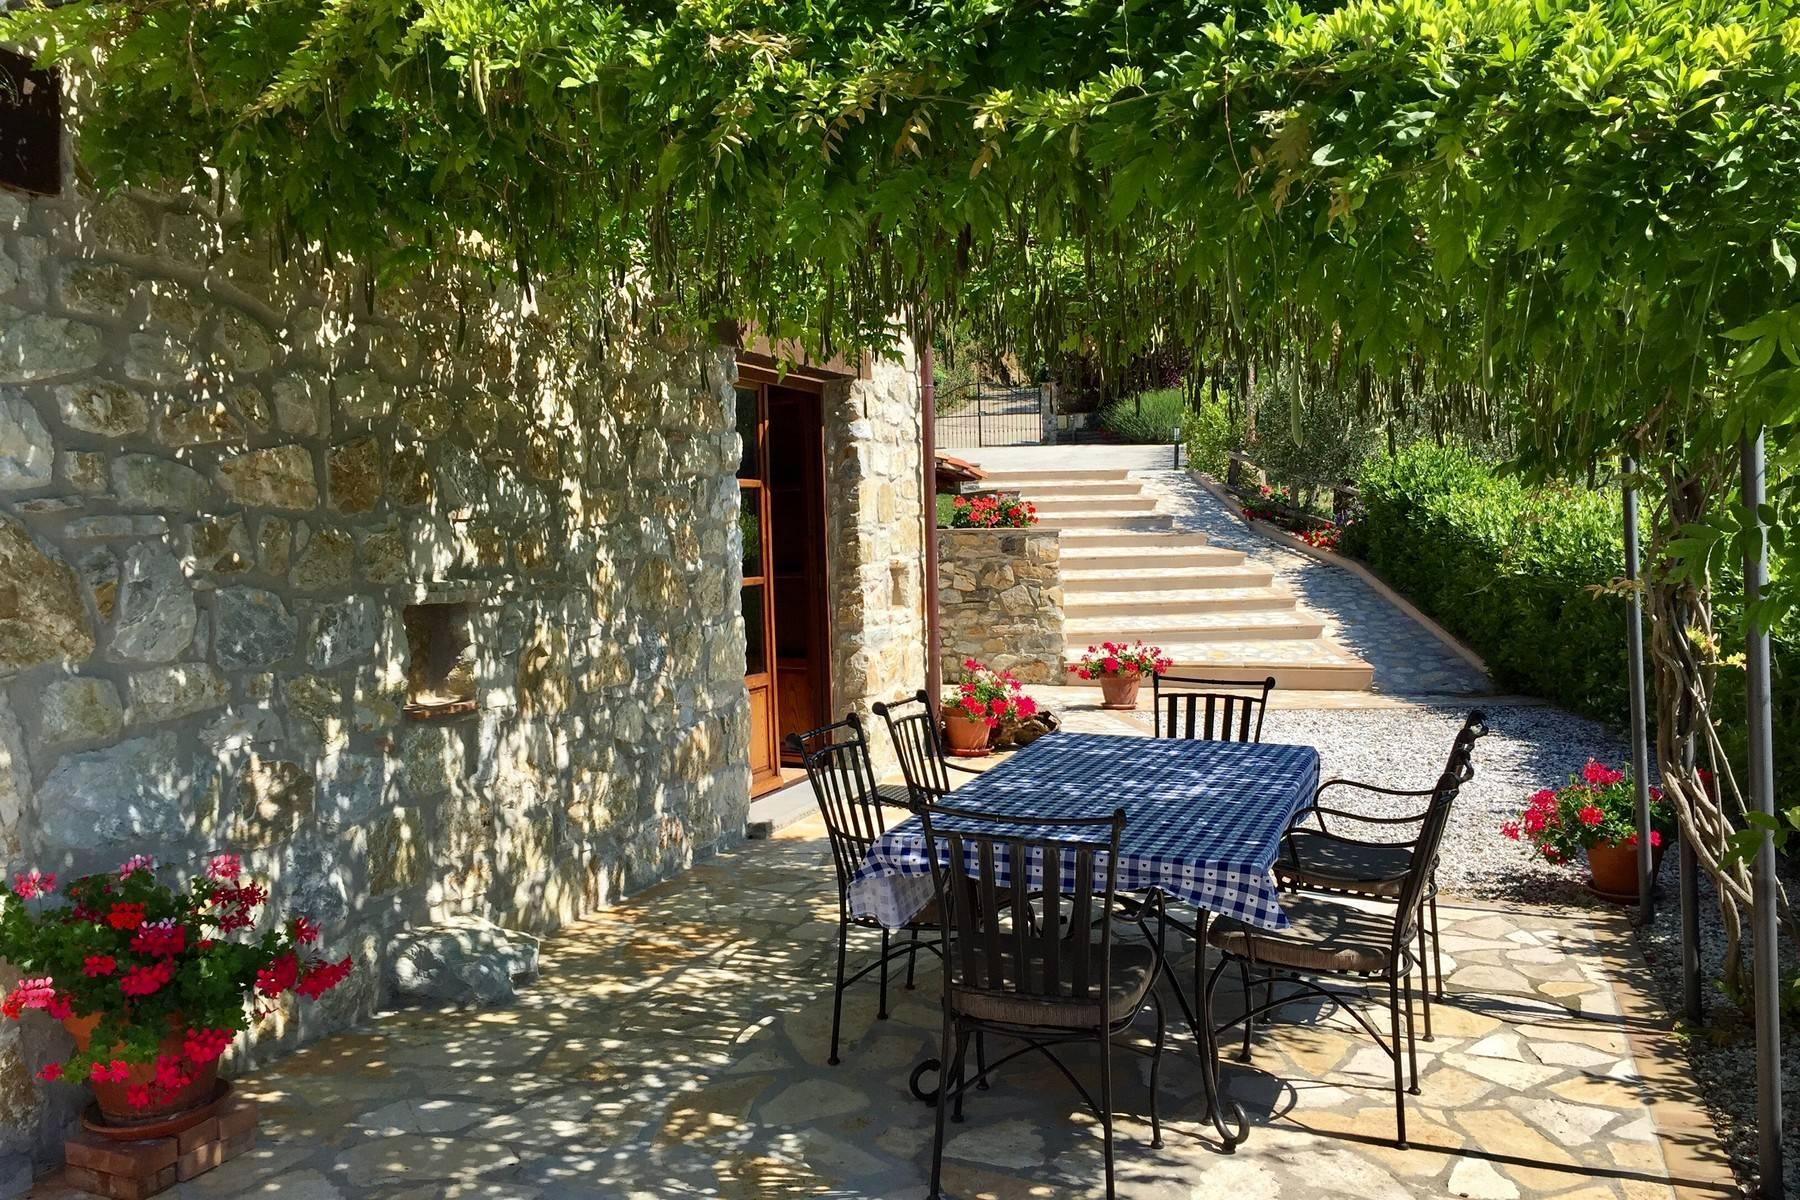 Delightful country house on the Lunigiana's hills - 28